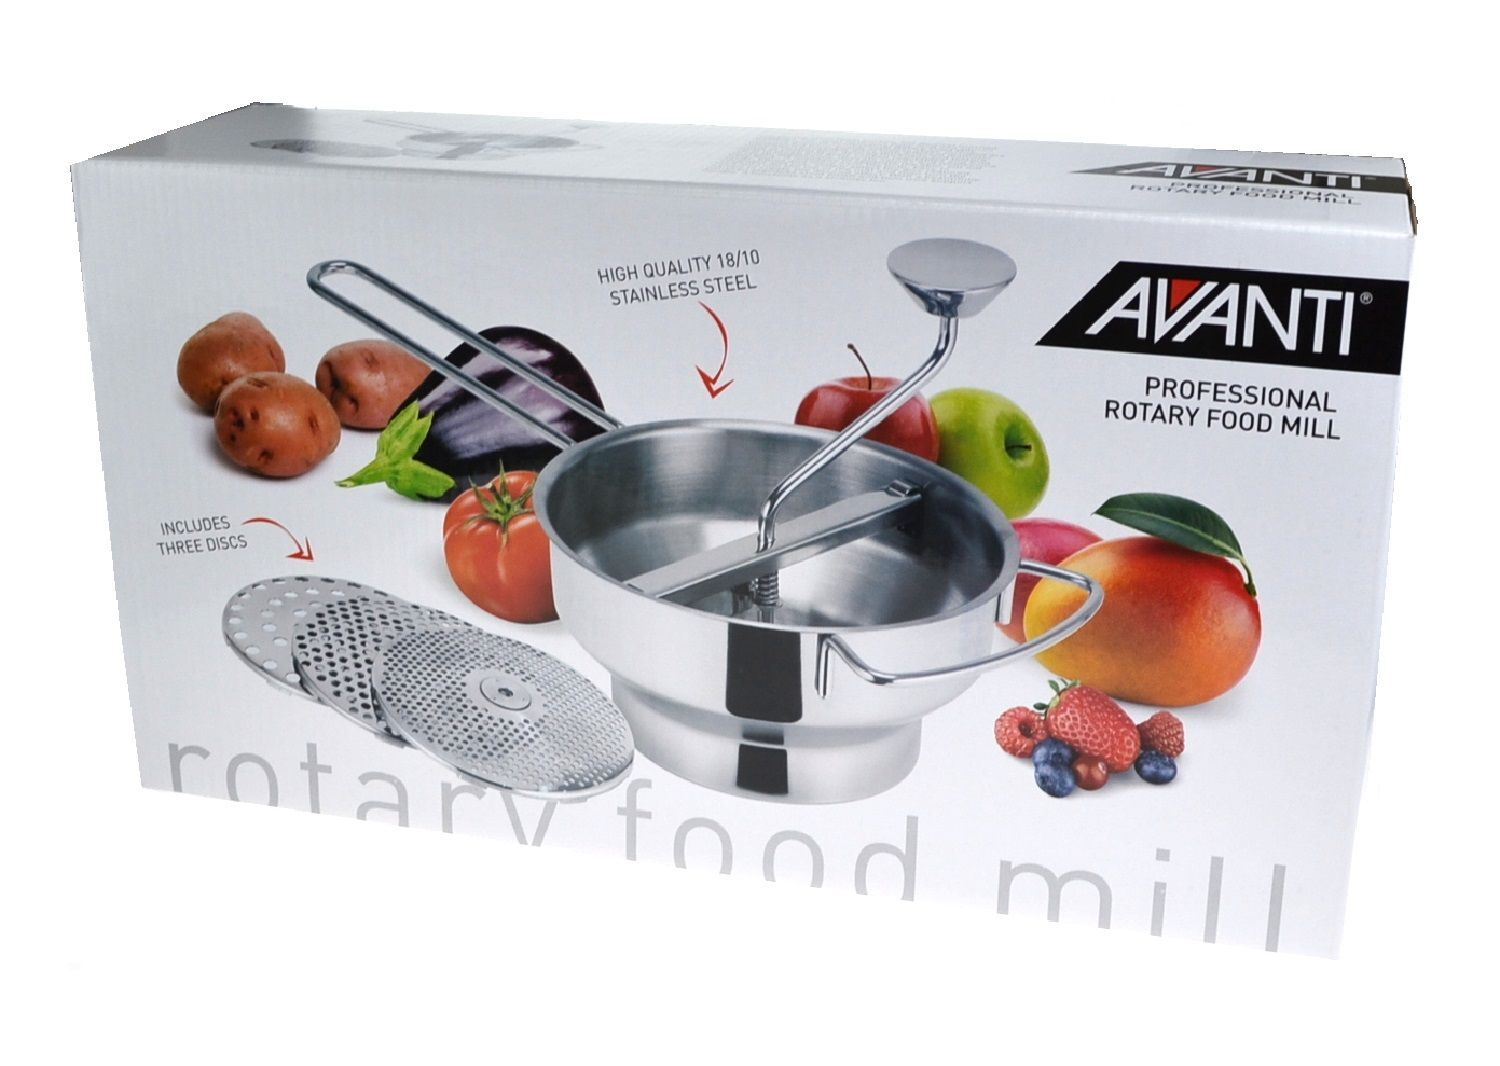 AVANTI PROFESSIONAL ROTARY FOOD MILL WITH 3 BLADES